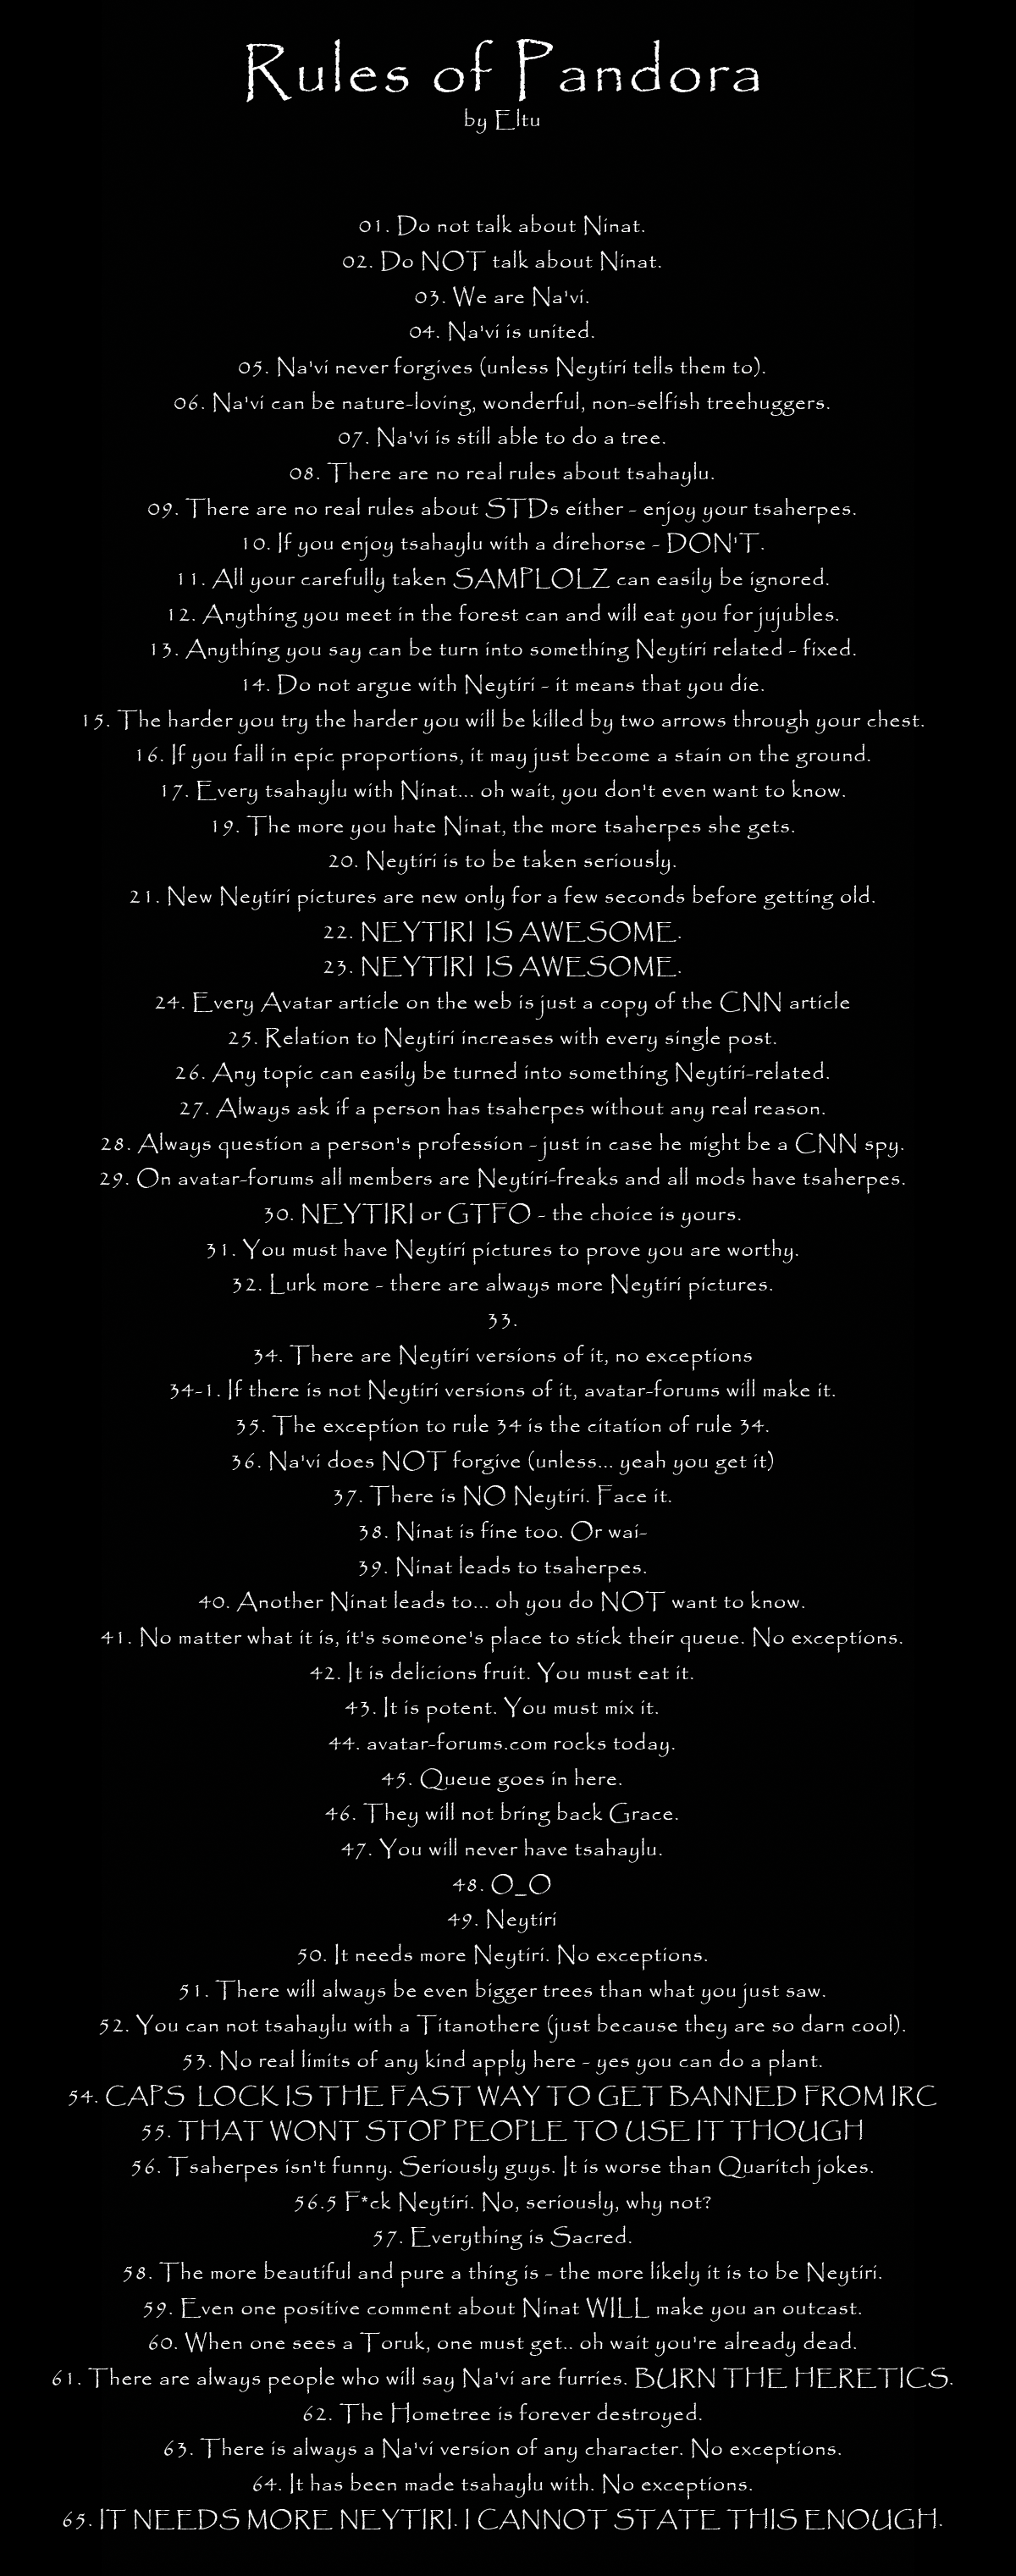 Image - 37873] | Rules of the Internet | Know Your Meme